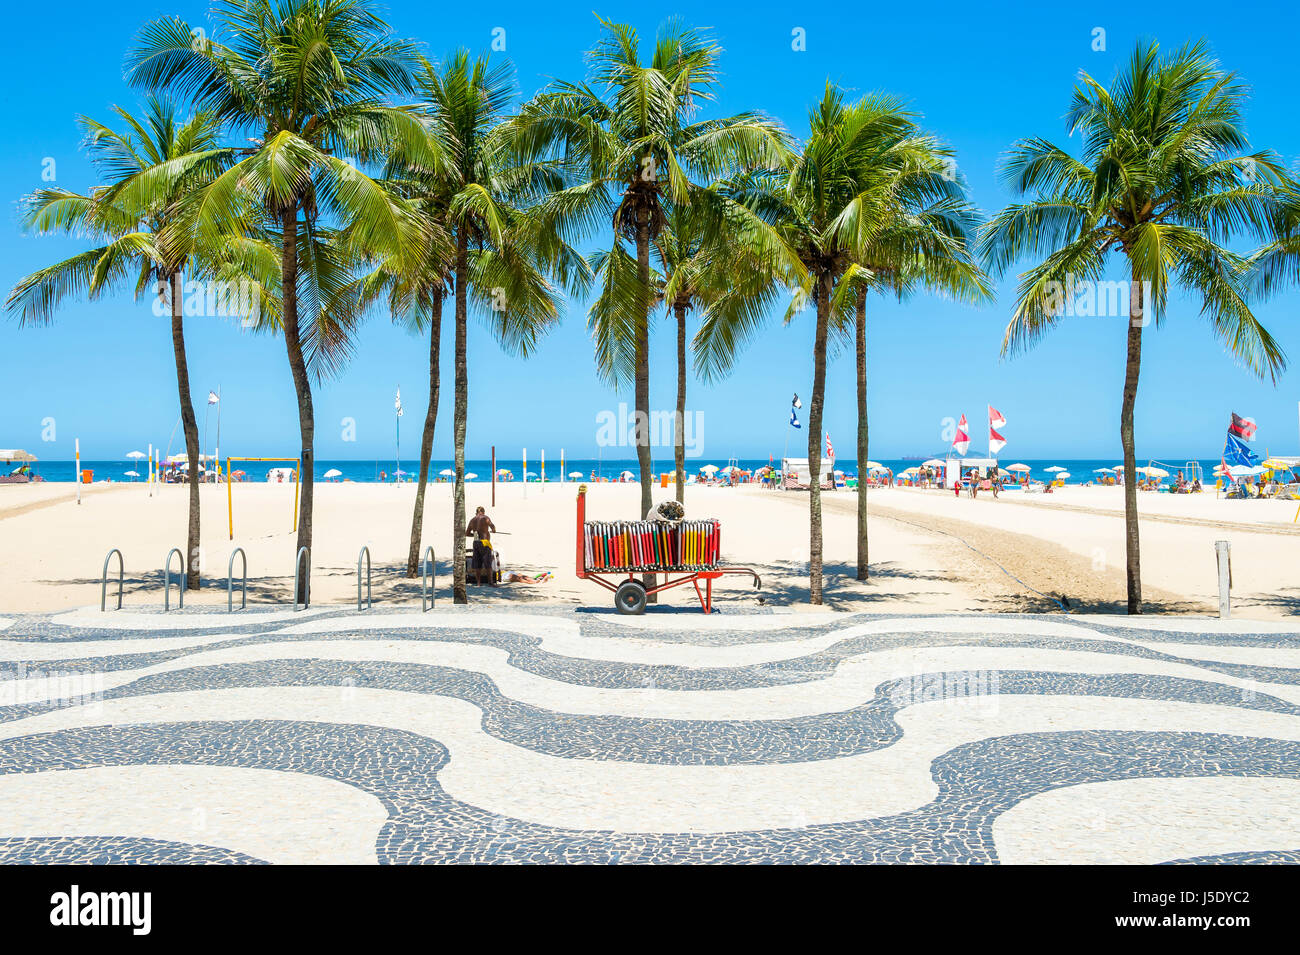 Bright scenic view of Copacabana Beach with palm trees beside the iconic boardwalk in Rio de Janeiro, Brazil - Stock Image